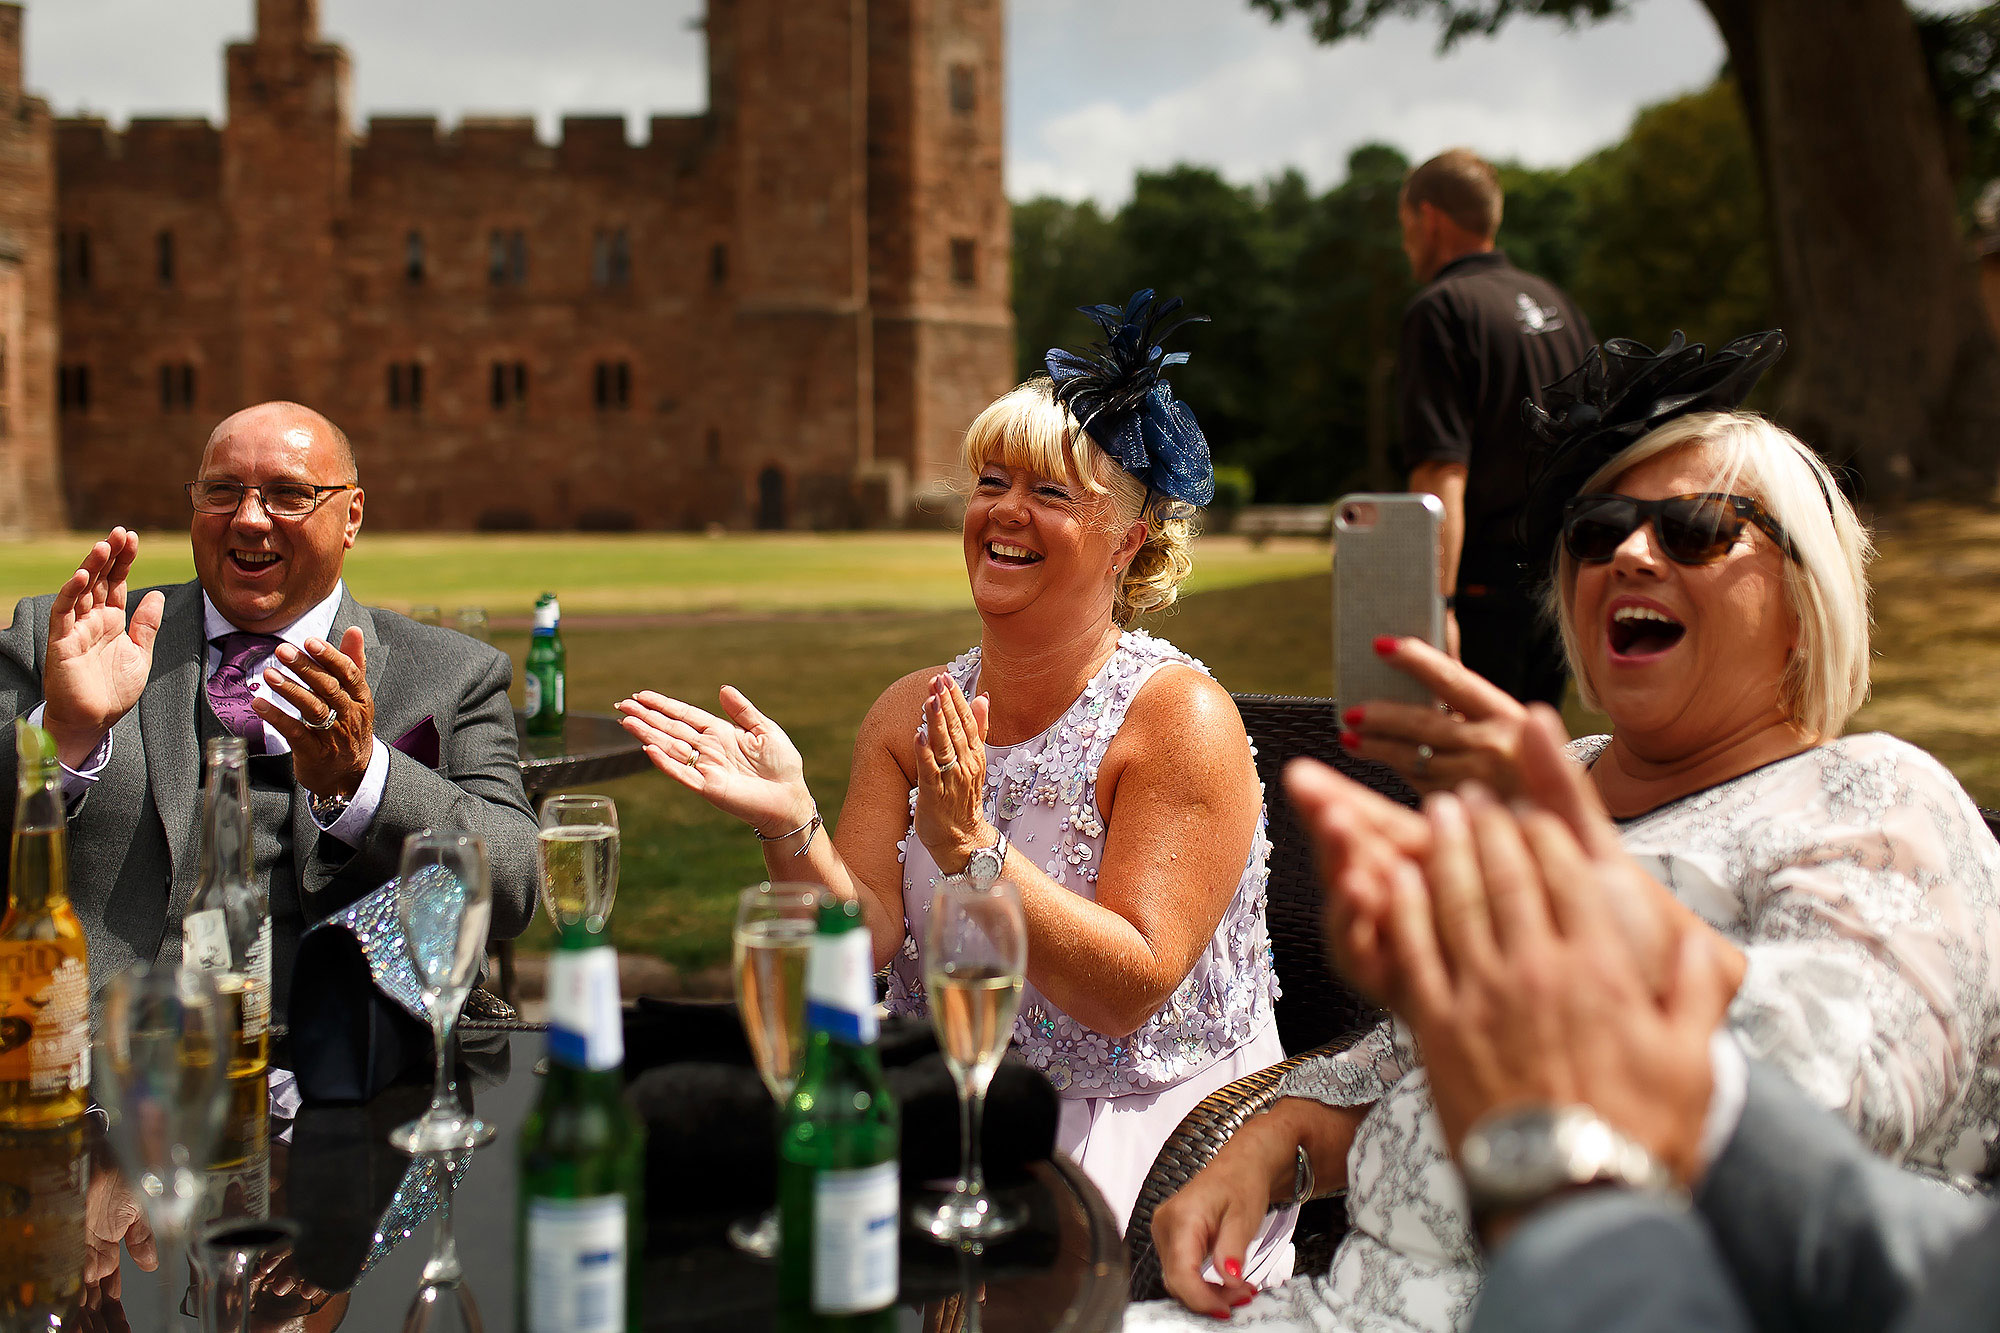 Wedding guests enjoying champagne outside Peckforton Castle | Peckforton Castle Wedding by Toni Darcy Photography